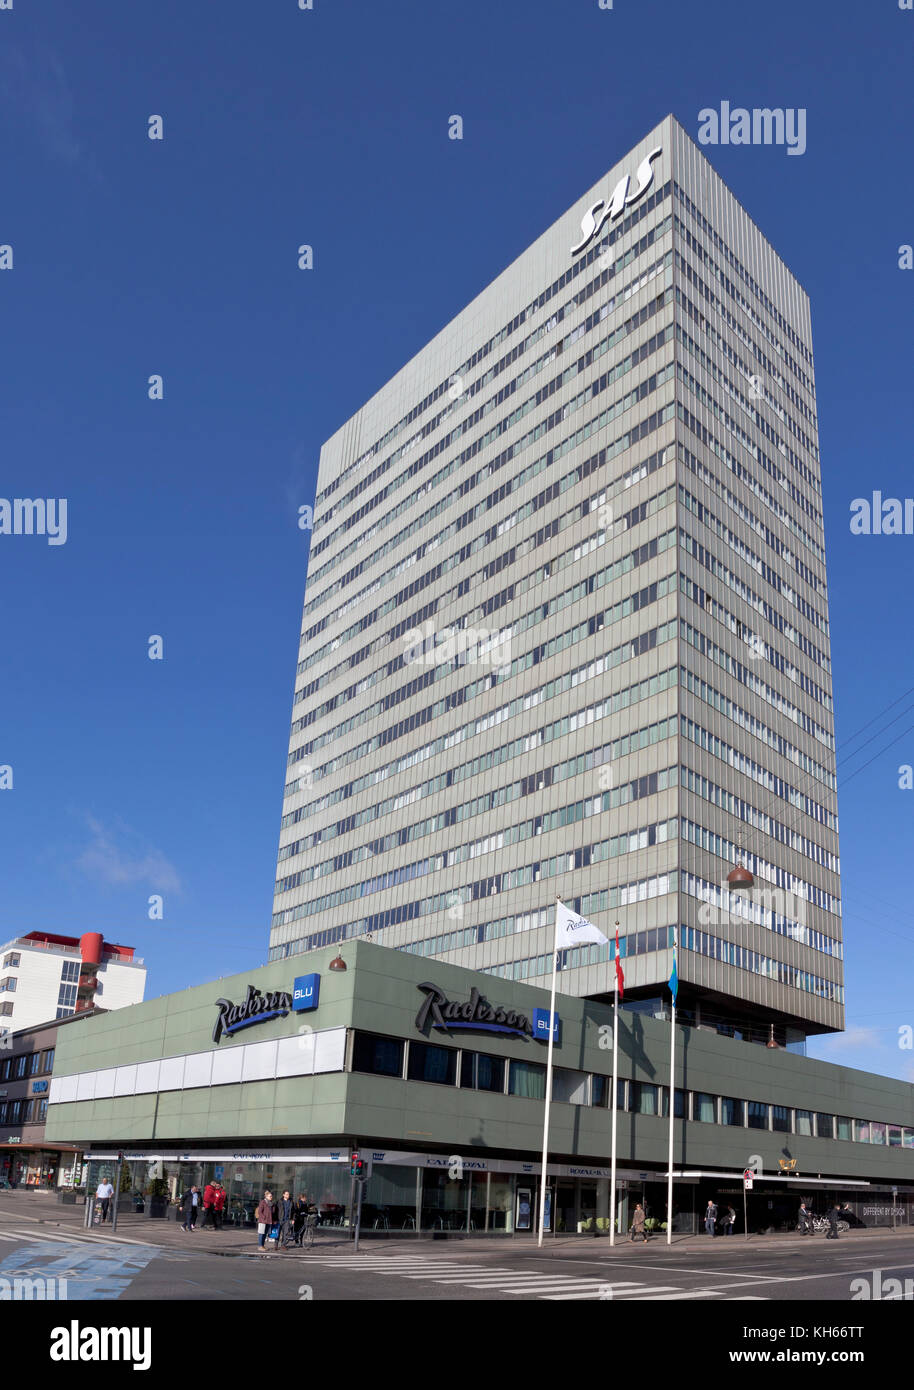 The Radisson Blu Royal Hotel, or just the SAS Hotel, at Vesterbrogade in Copenhagen, Denmark. - Stock Image